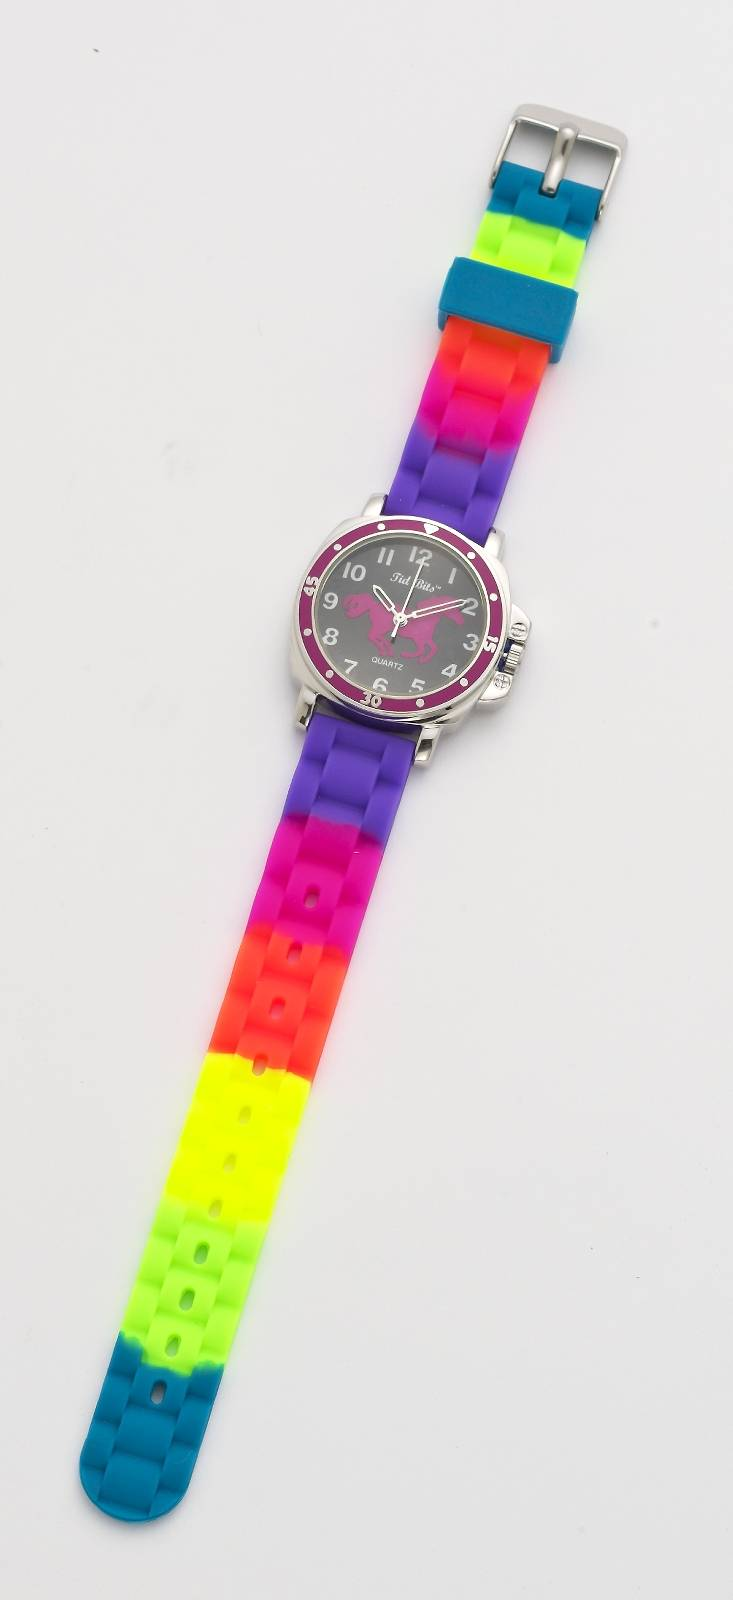 Tie-Dye Galloping Horse Mood Watch